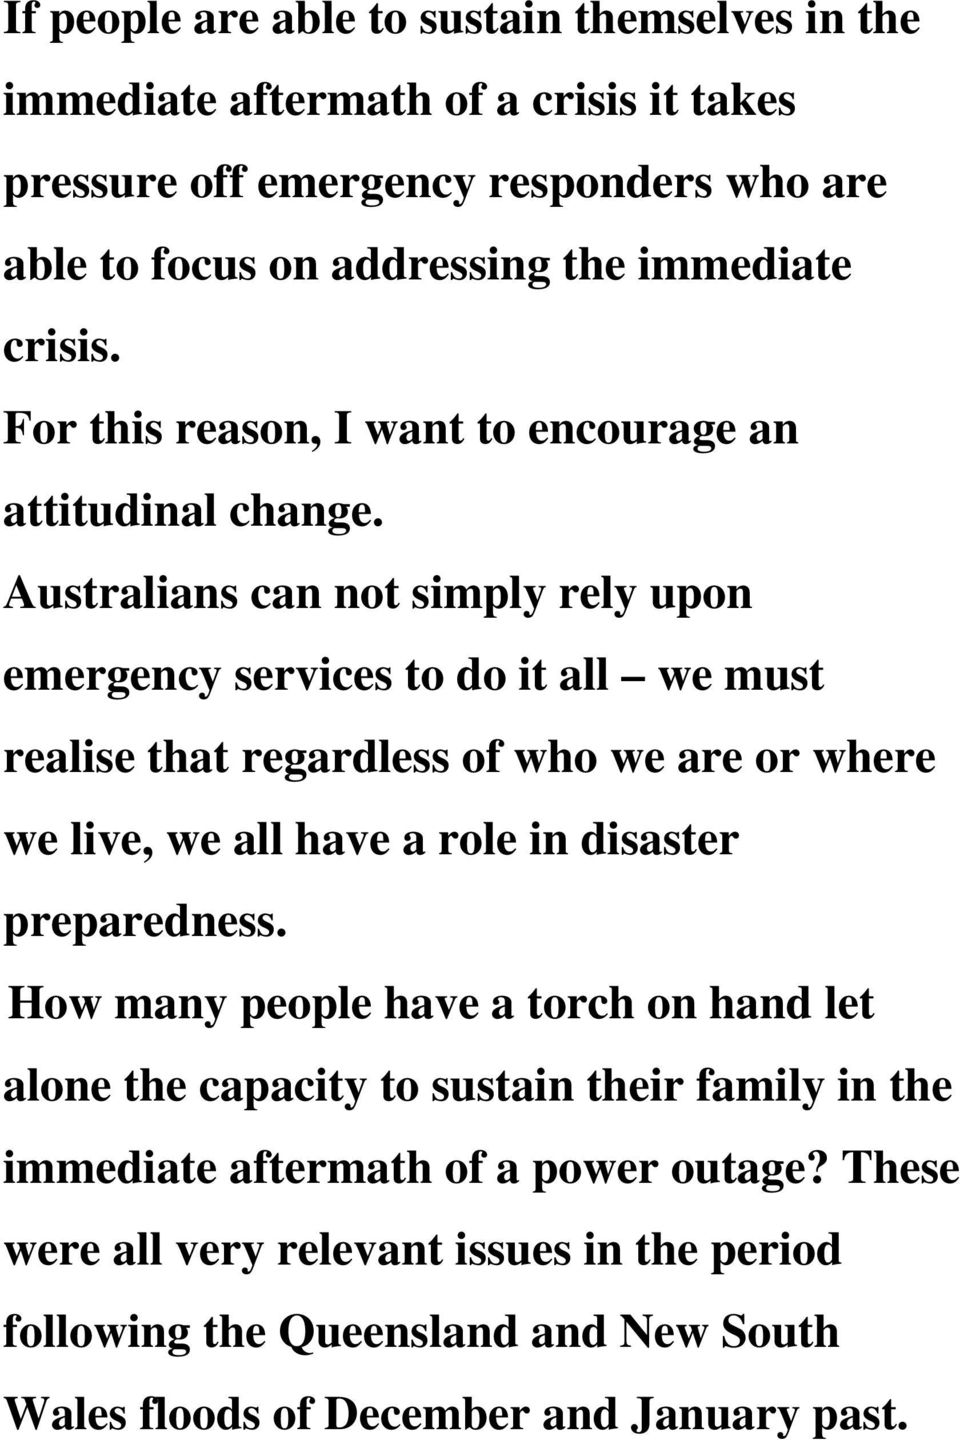 Australians can not simply rely upon emergency services to do it all we must realise that regardless of who we are or where we live, we all have a role in disaster